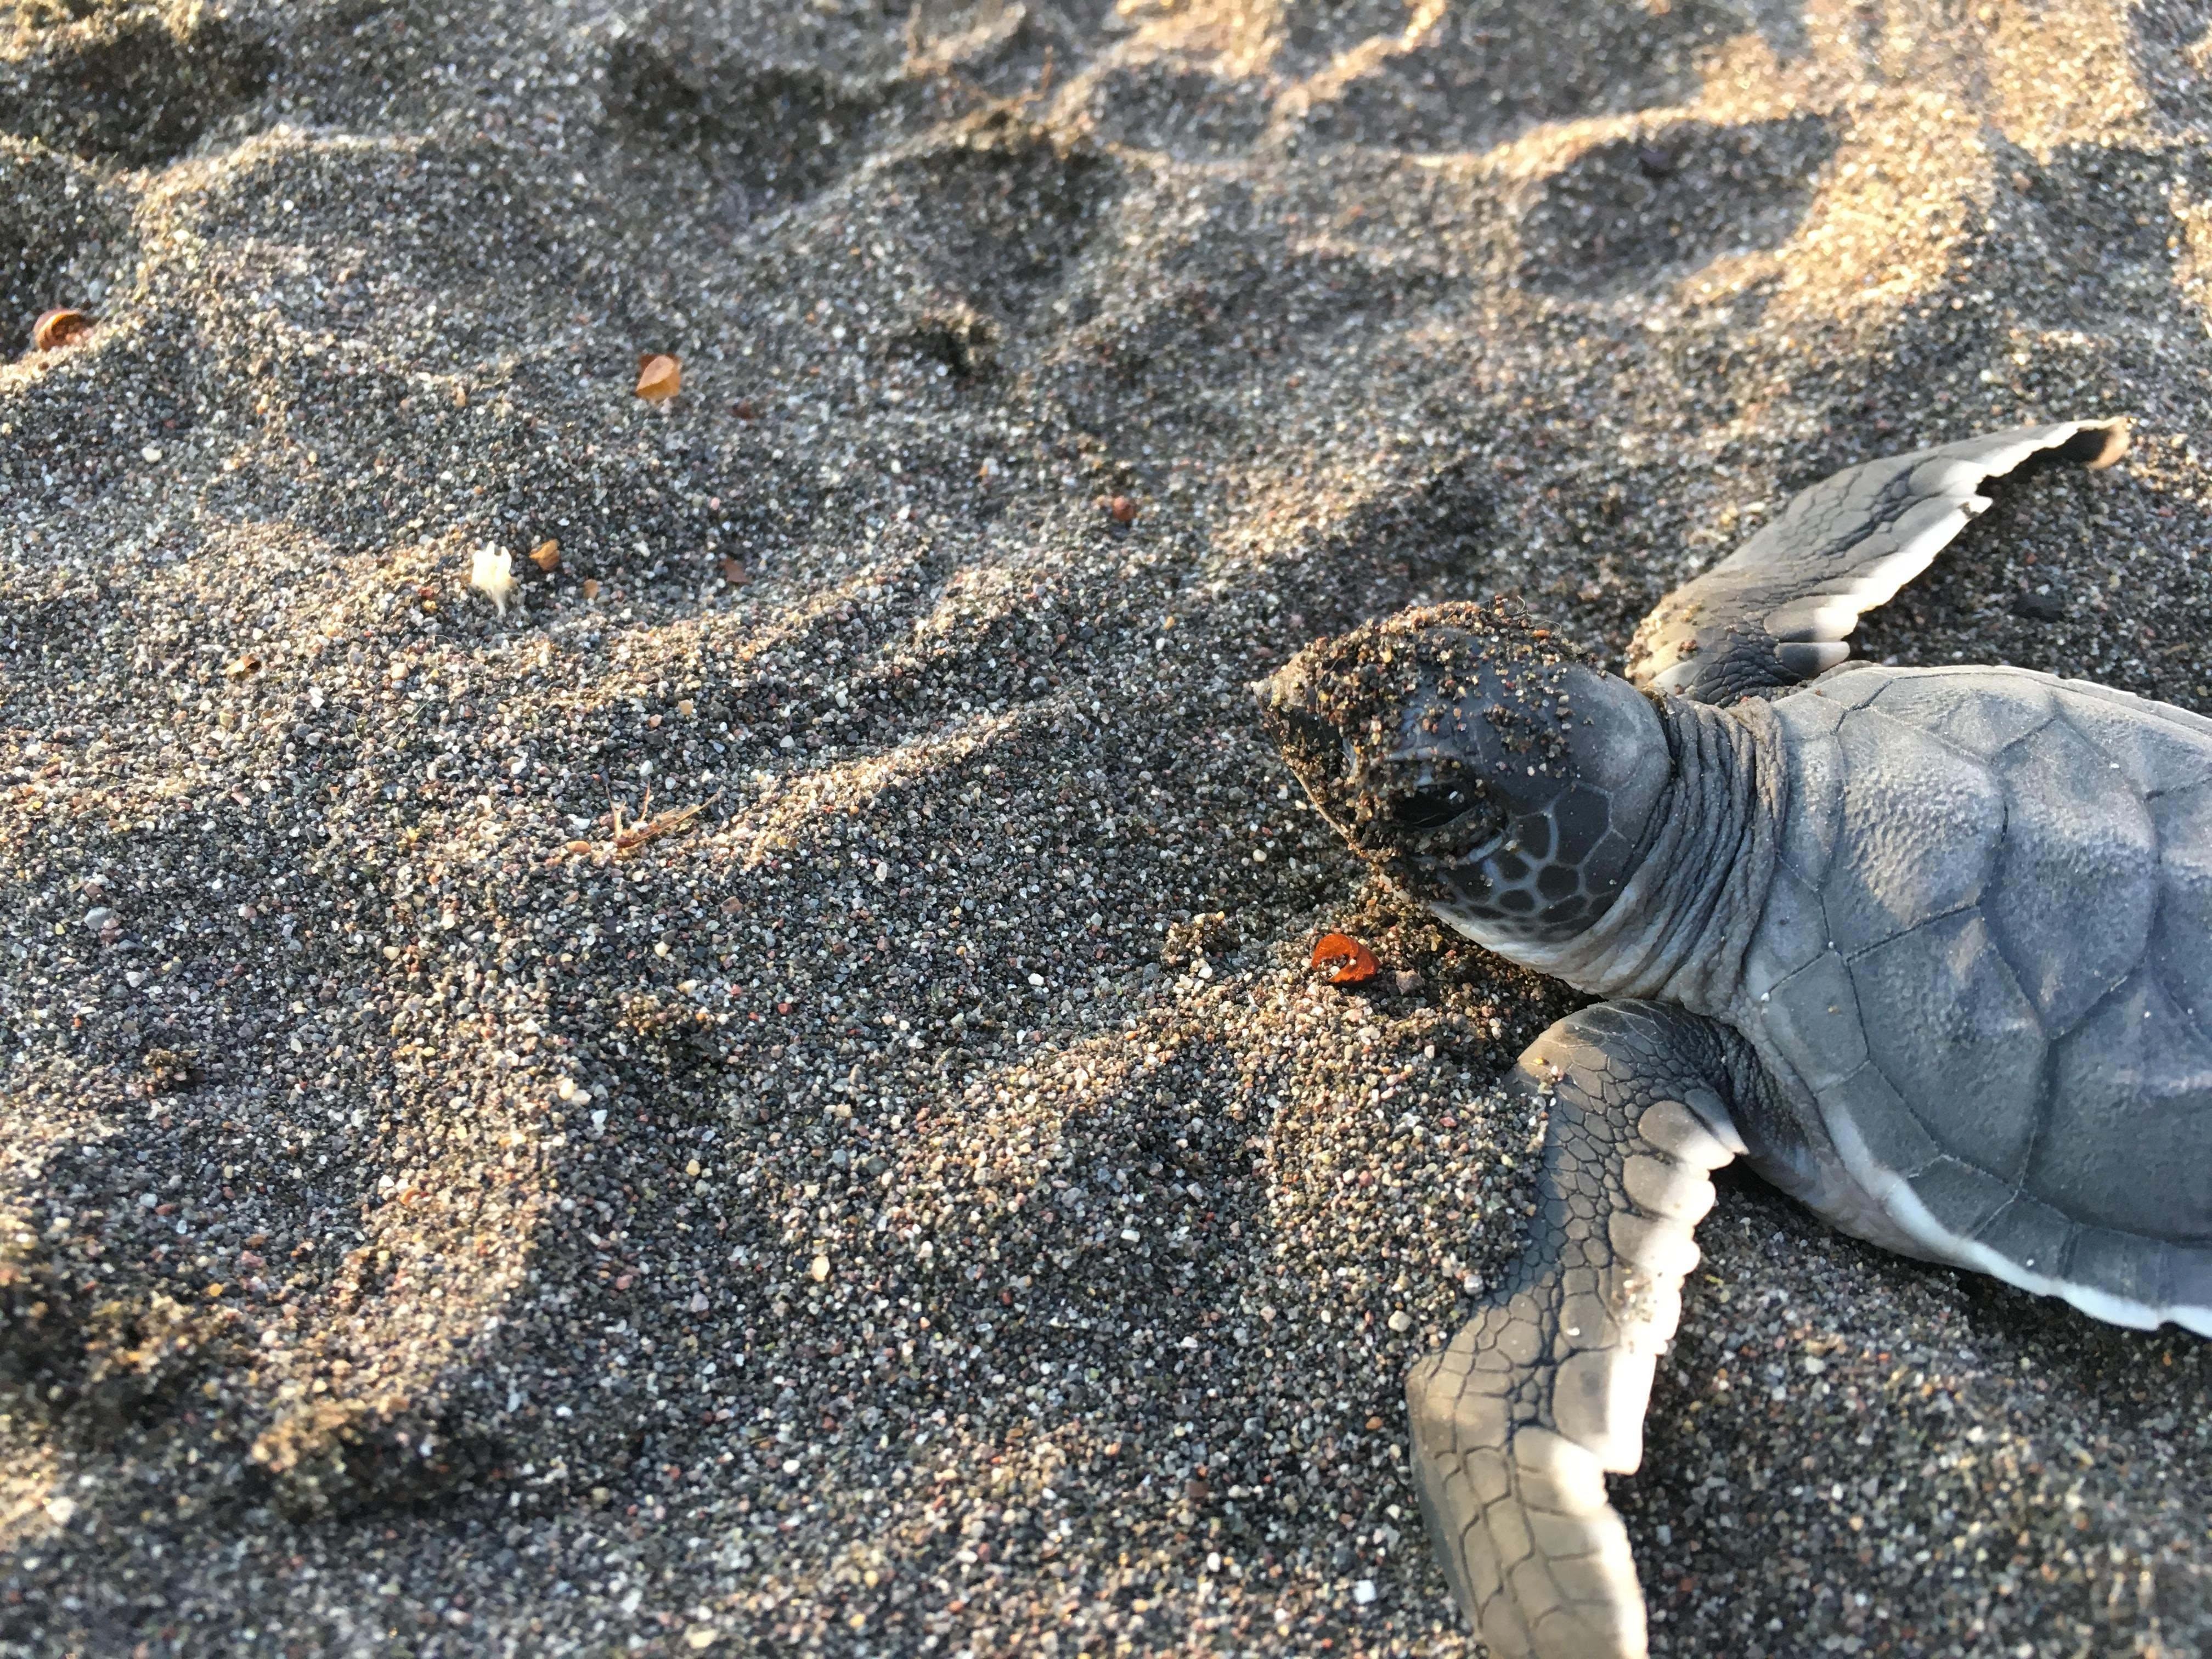 Conservation volunteer work in Mexico for teenagers involves lots of work with turtle hatchlings